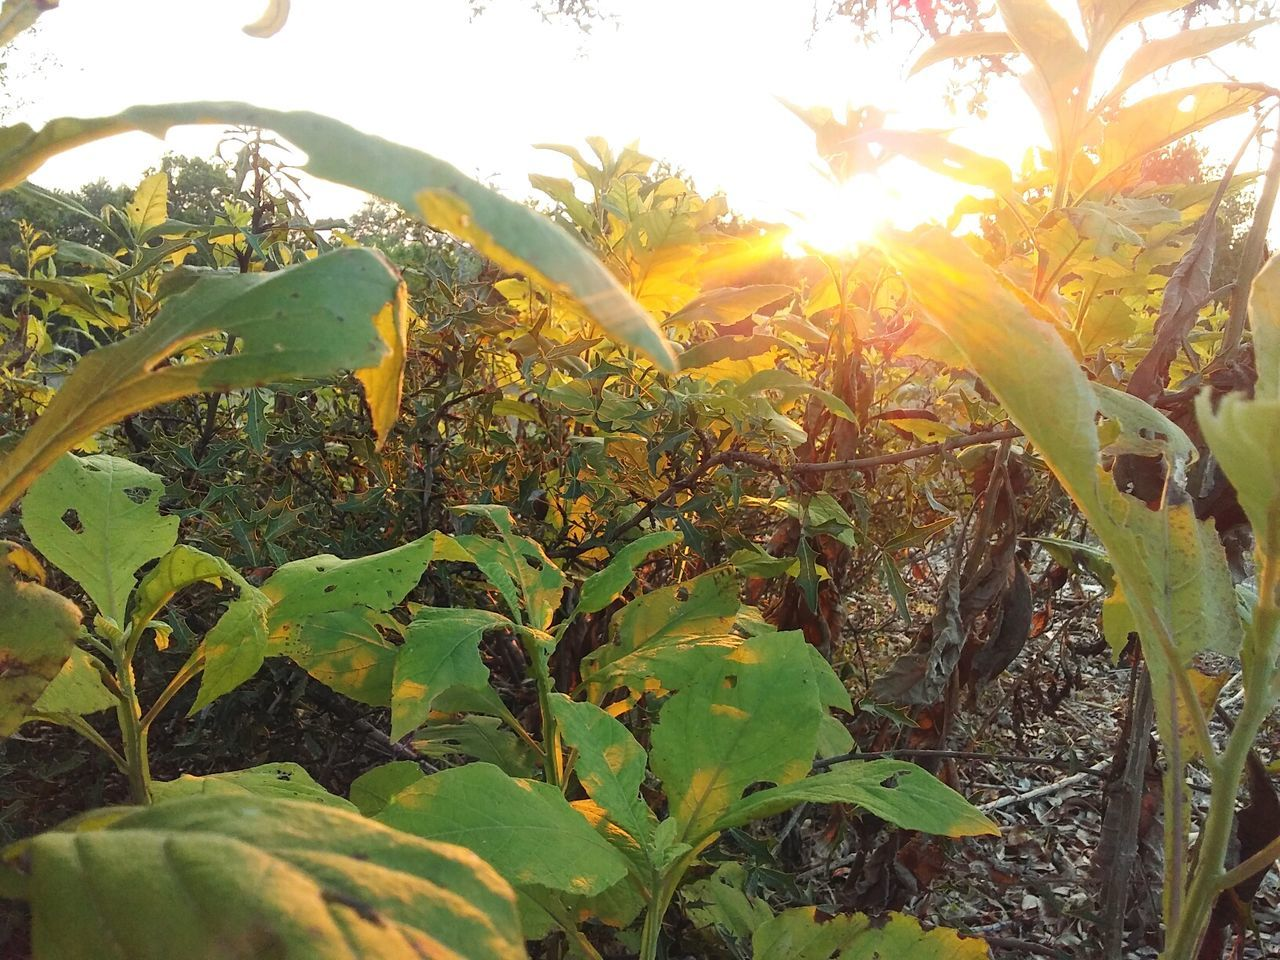 growth, leaf, nature, plant, green color, no people, outdoors, beauty in nature, sunlight, banana tree, agriculture, day, freshness, close-up